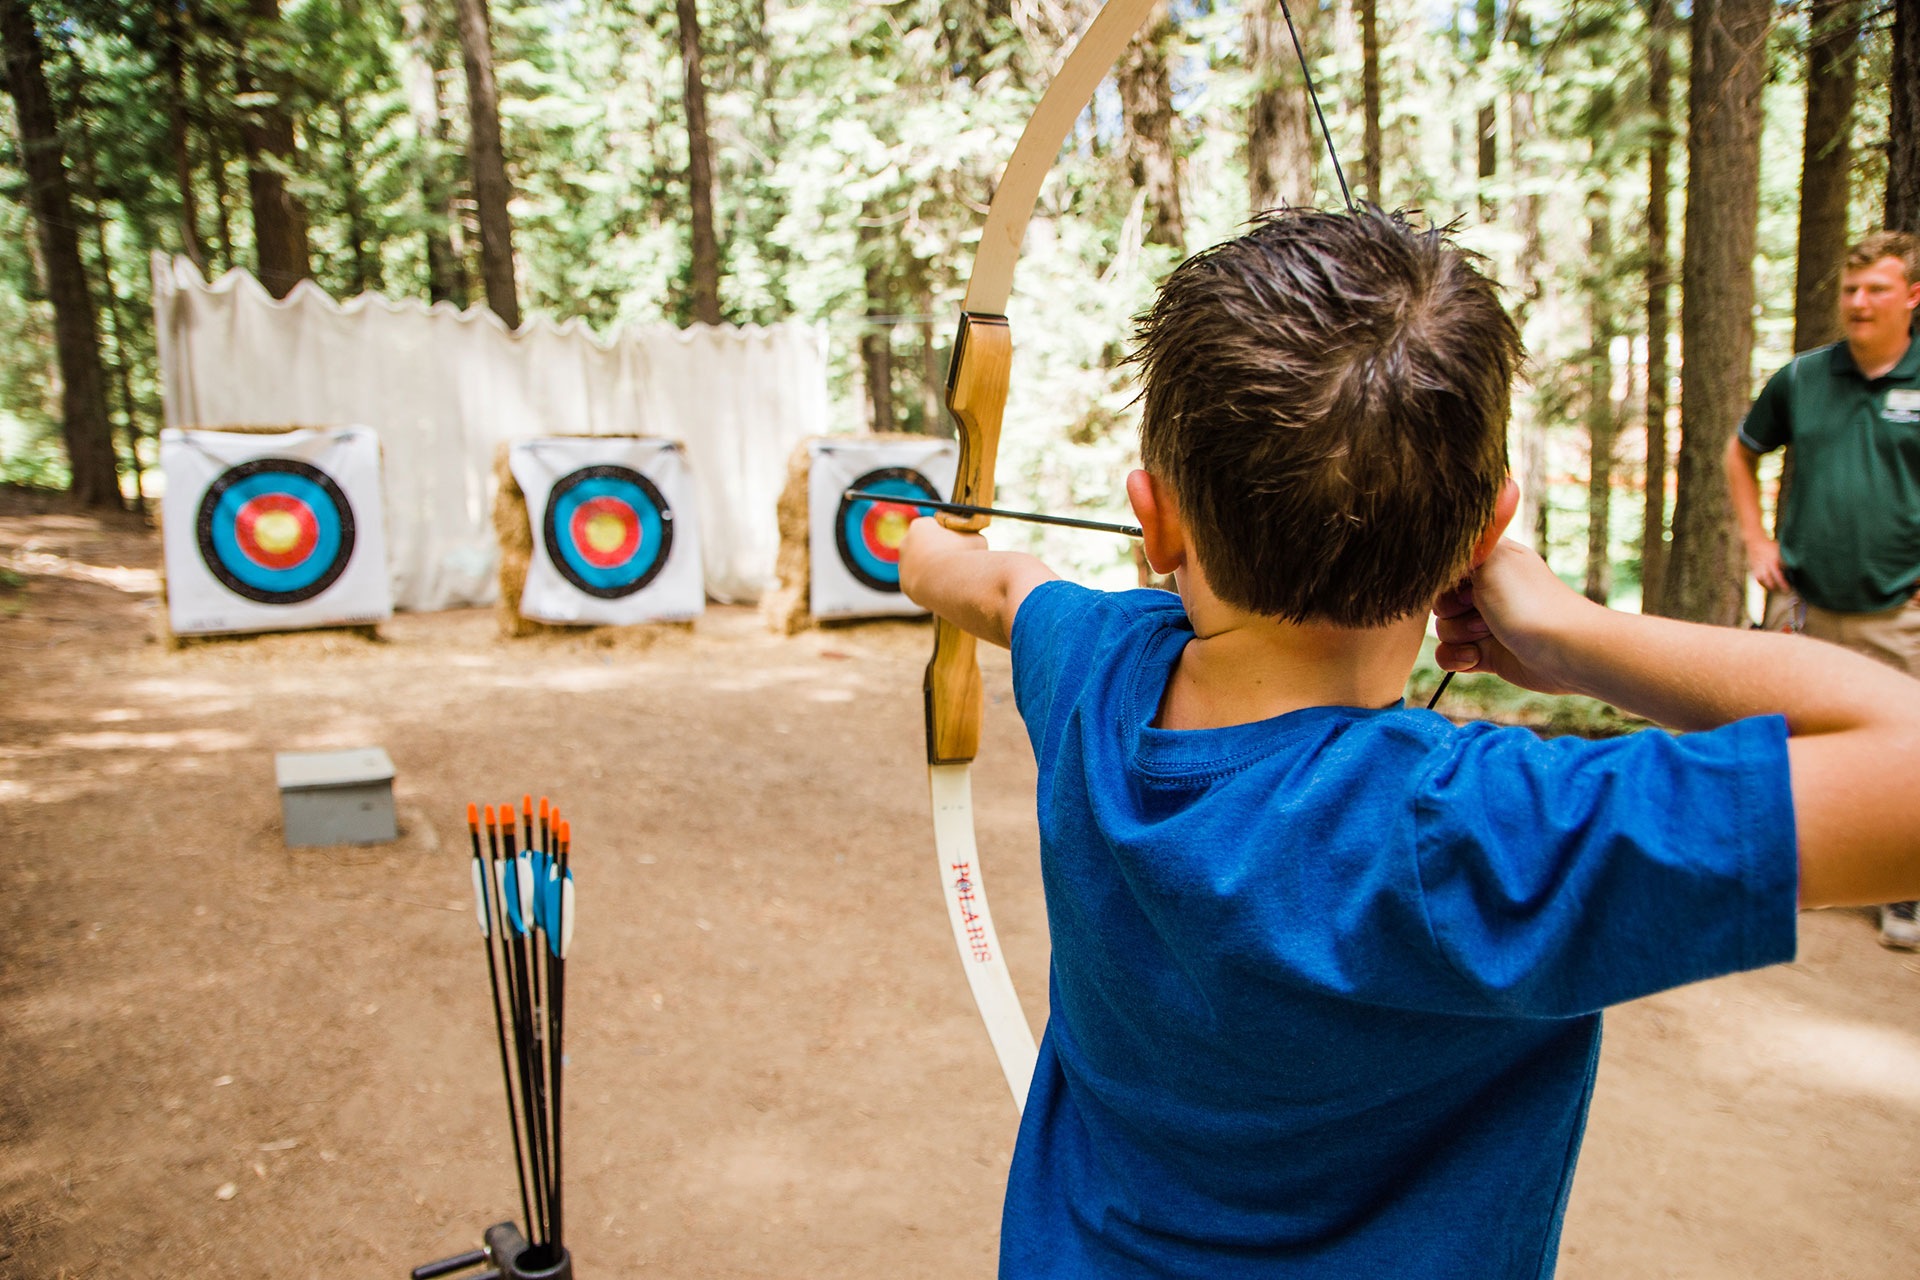 Archery Lessons at Tenaya Lodge at Yosemite; Courtesy of Tenaya Lodge at Yosemite